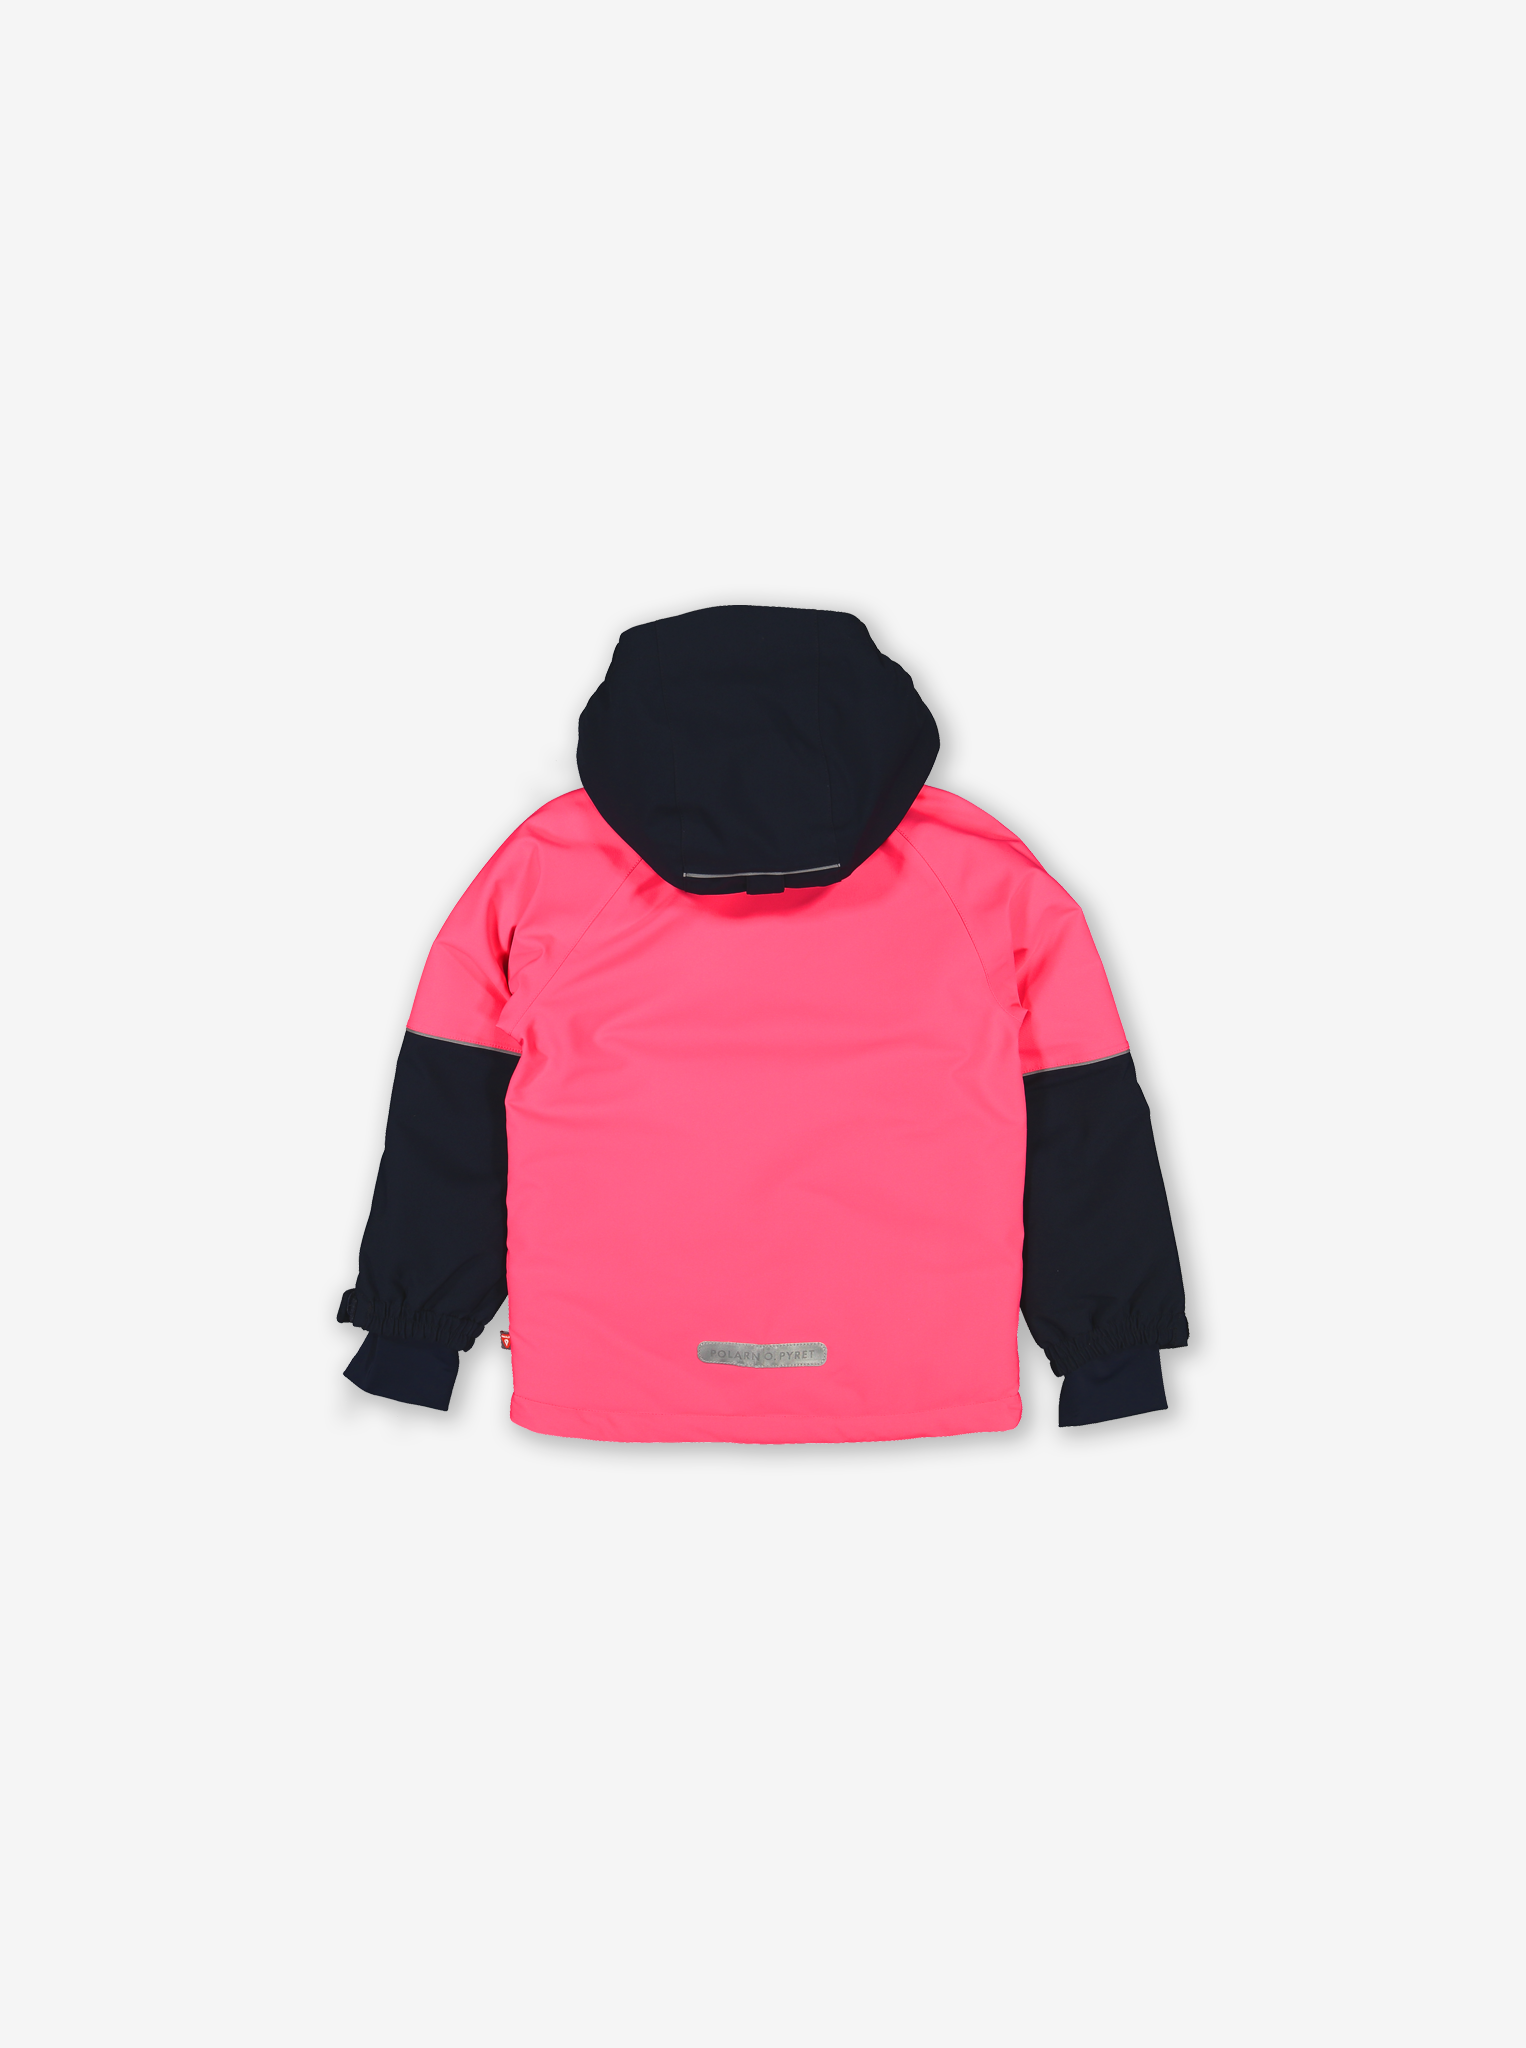 Kids Ski Jacket - Limited Edition